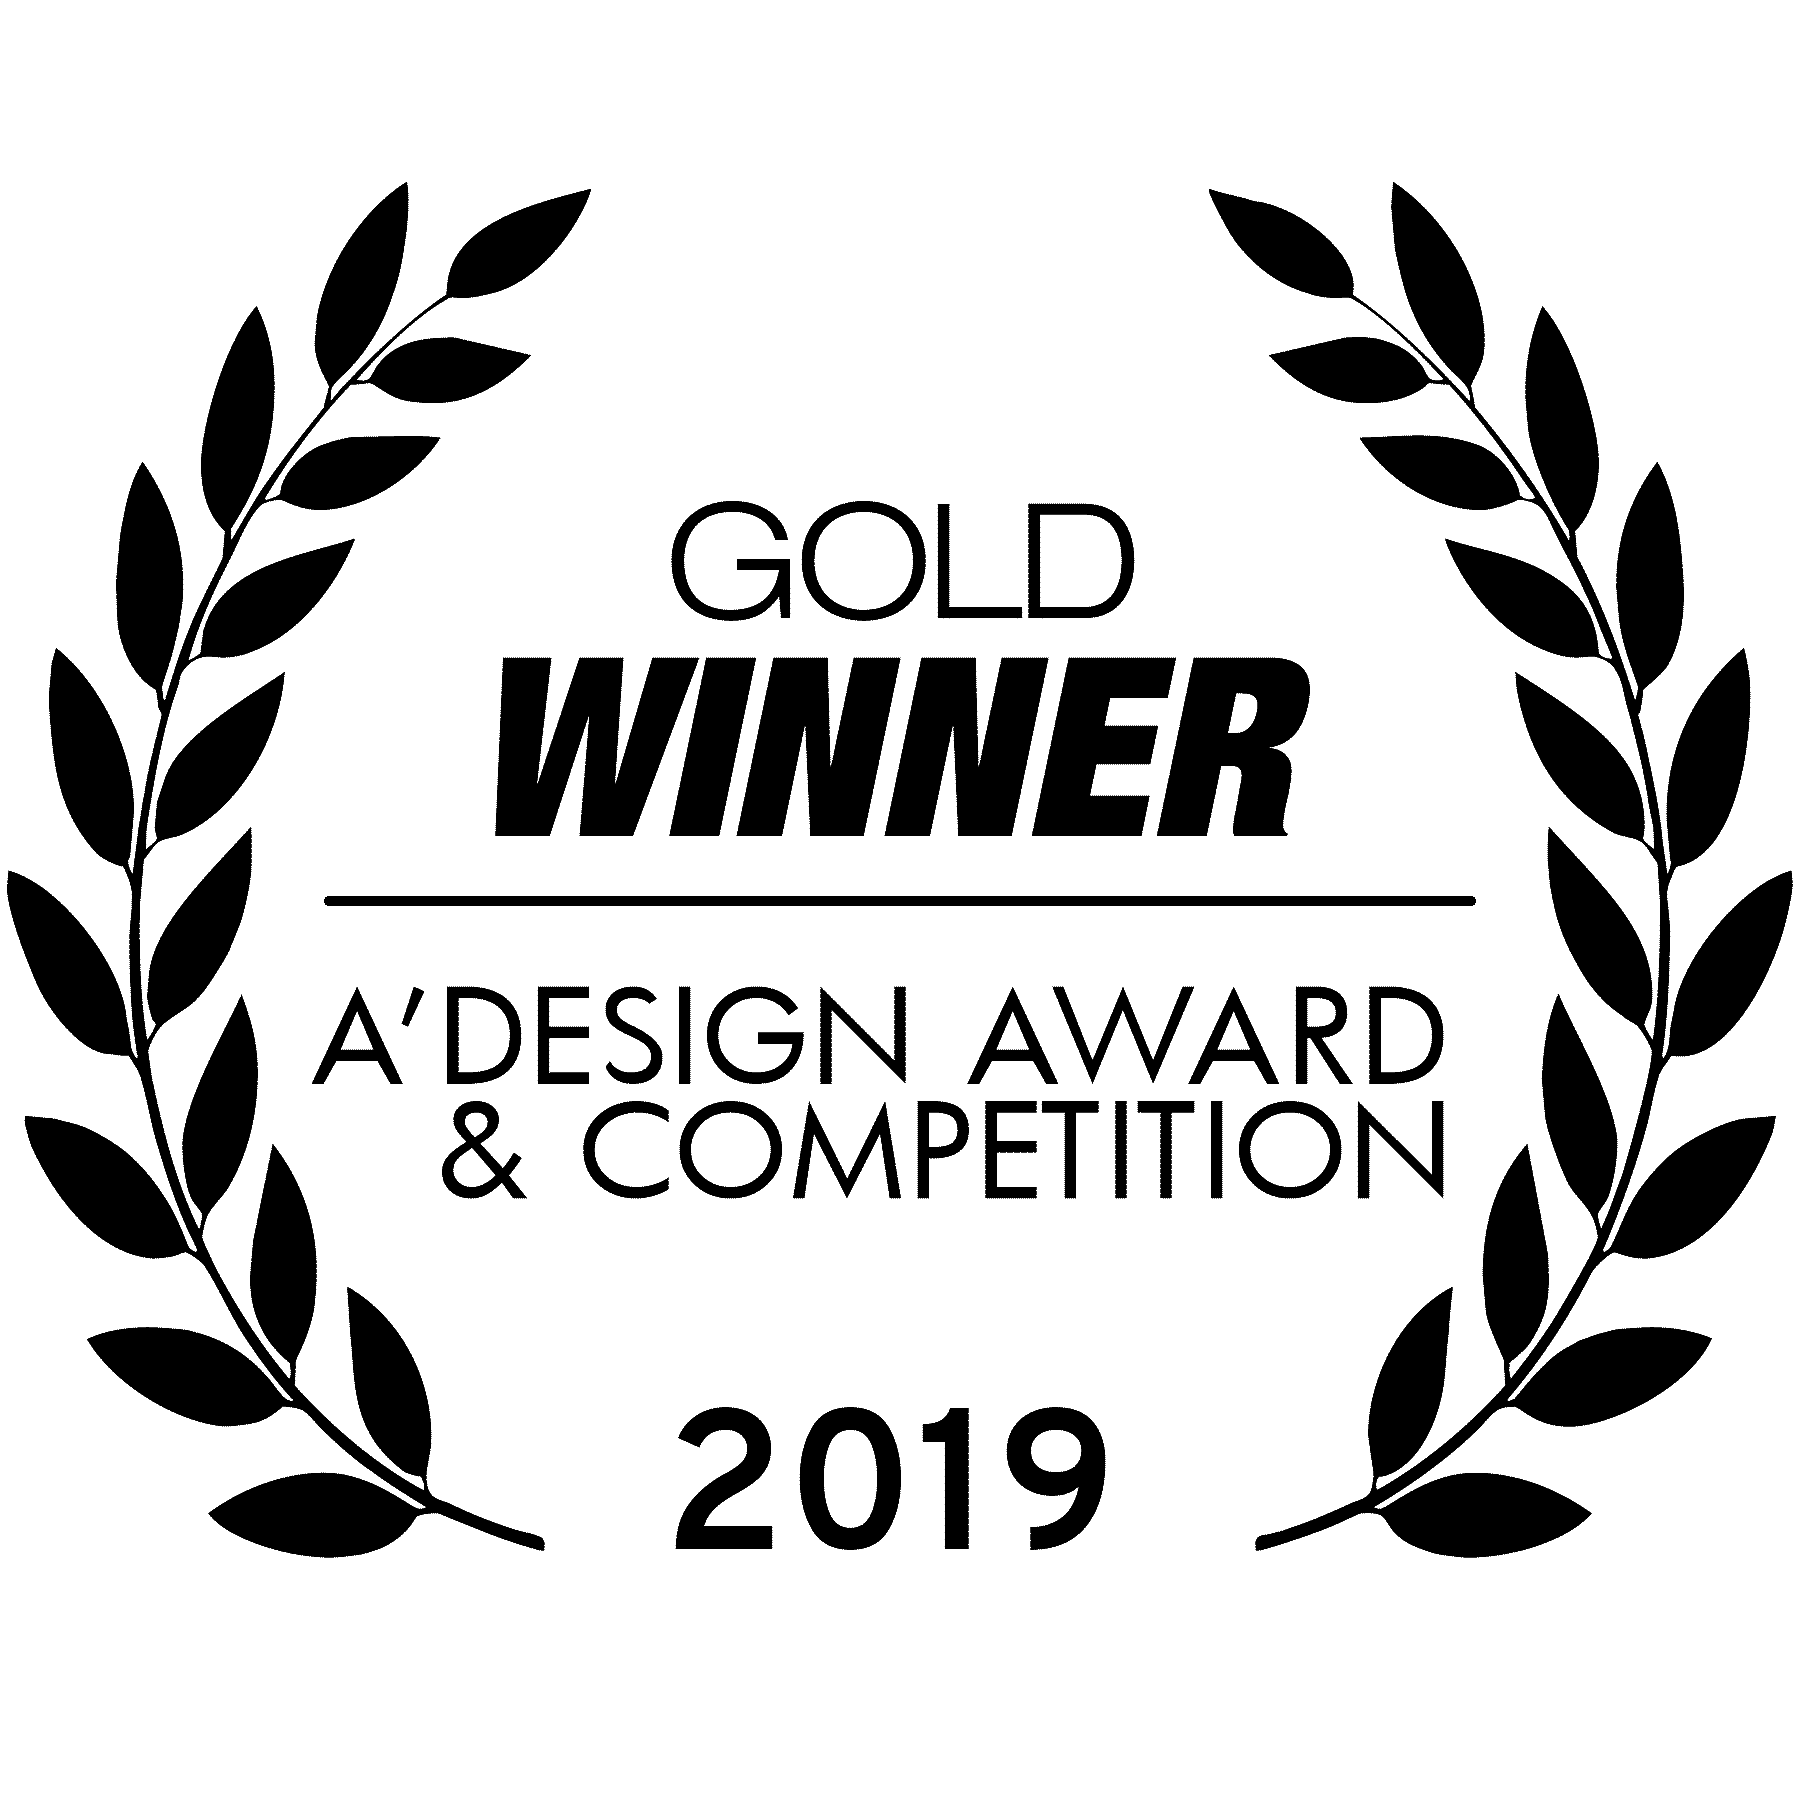 a-design-awards-2019.png